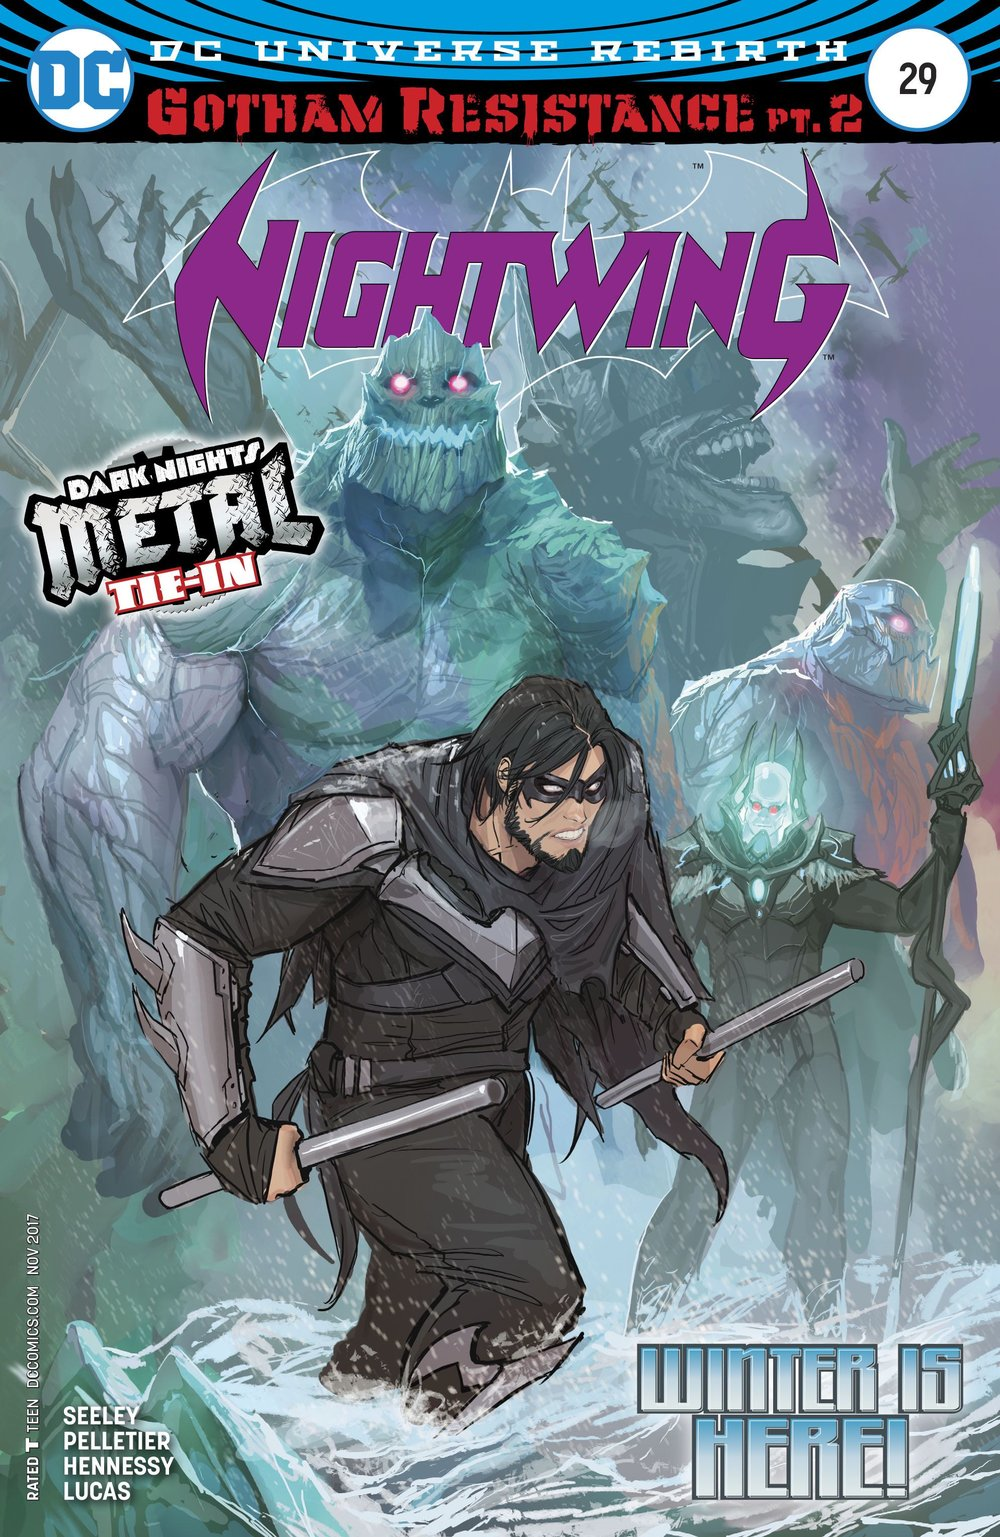 Episode 5 Cover of the Week! - (DC) Nightwing #29Cover by Stjepan SejicWritten by Tim SeeleyIllustrated by Paul PelletierDid the Content Match the Drapes? - UNR